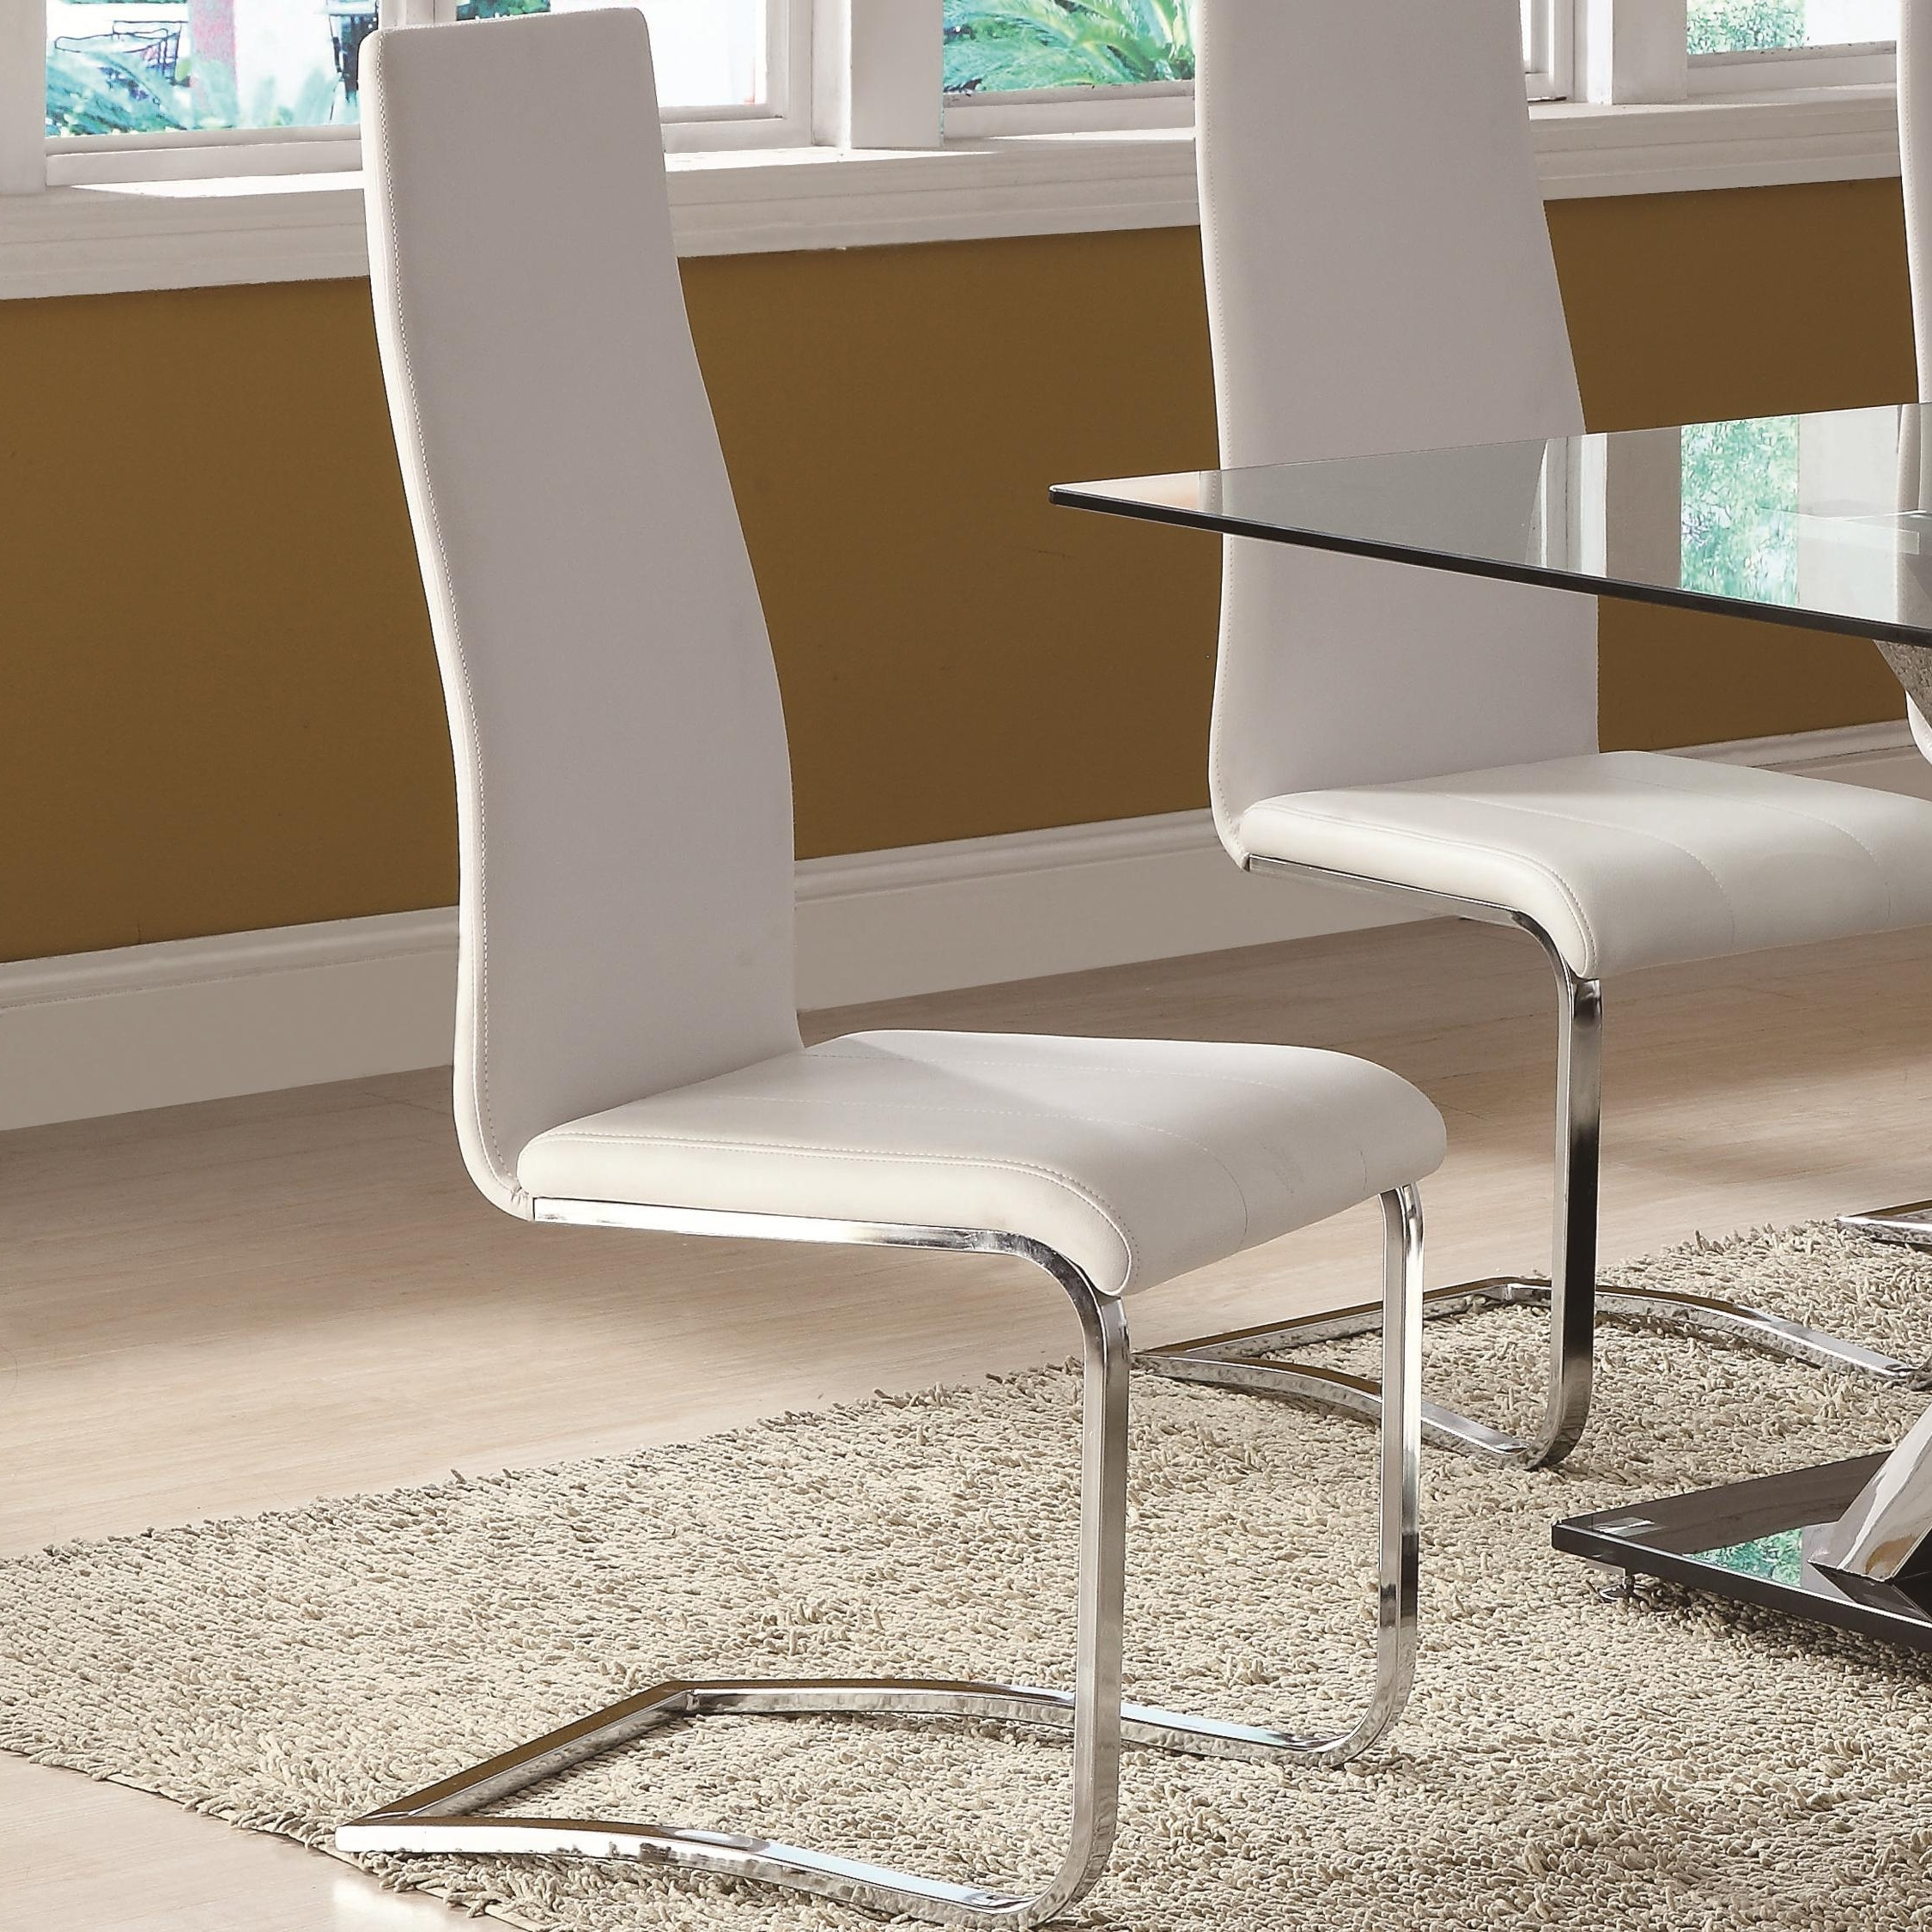 Widely Used White Leather Dining Room Chairs Throughout Modern Dining White Faux Leather Dining Chair With Chrome Legs (View 22 of 25)